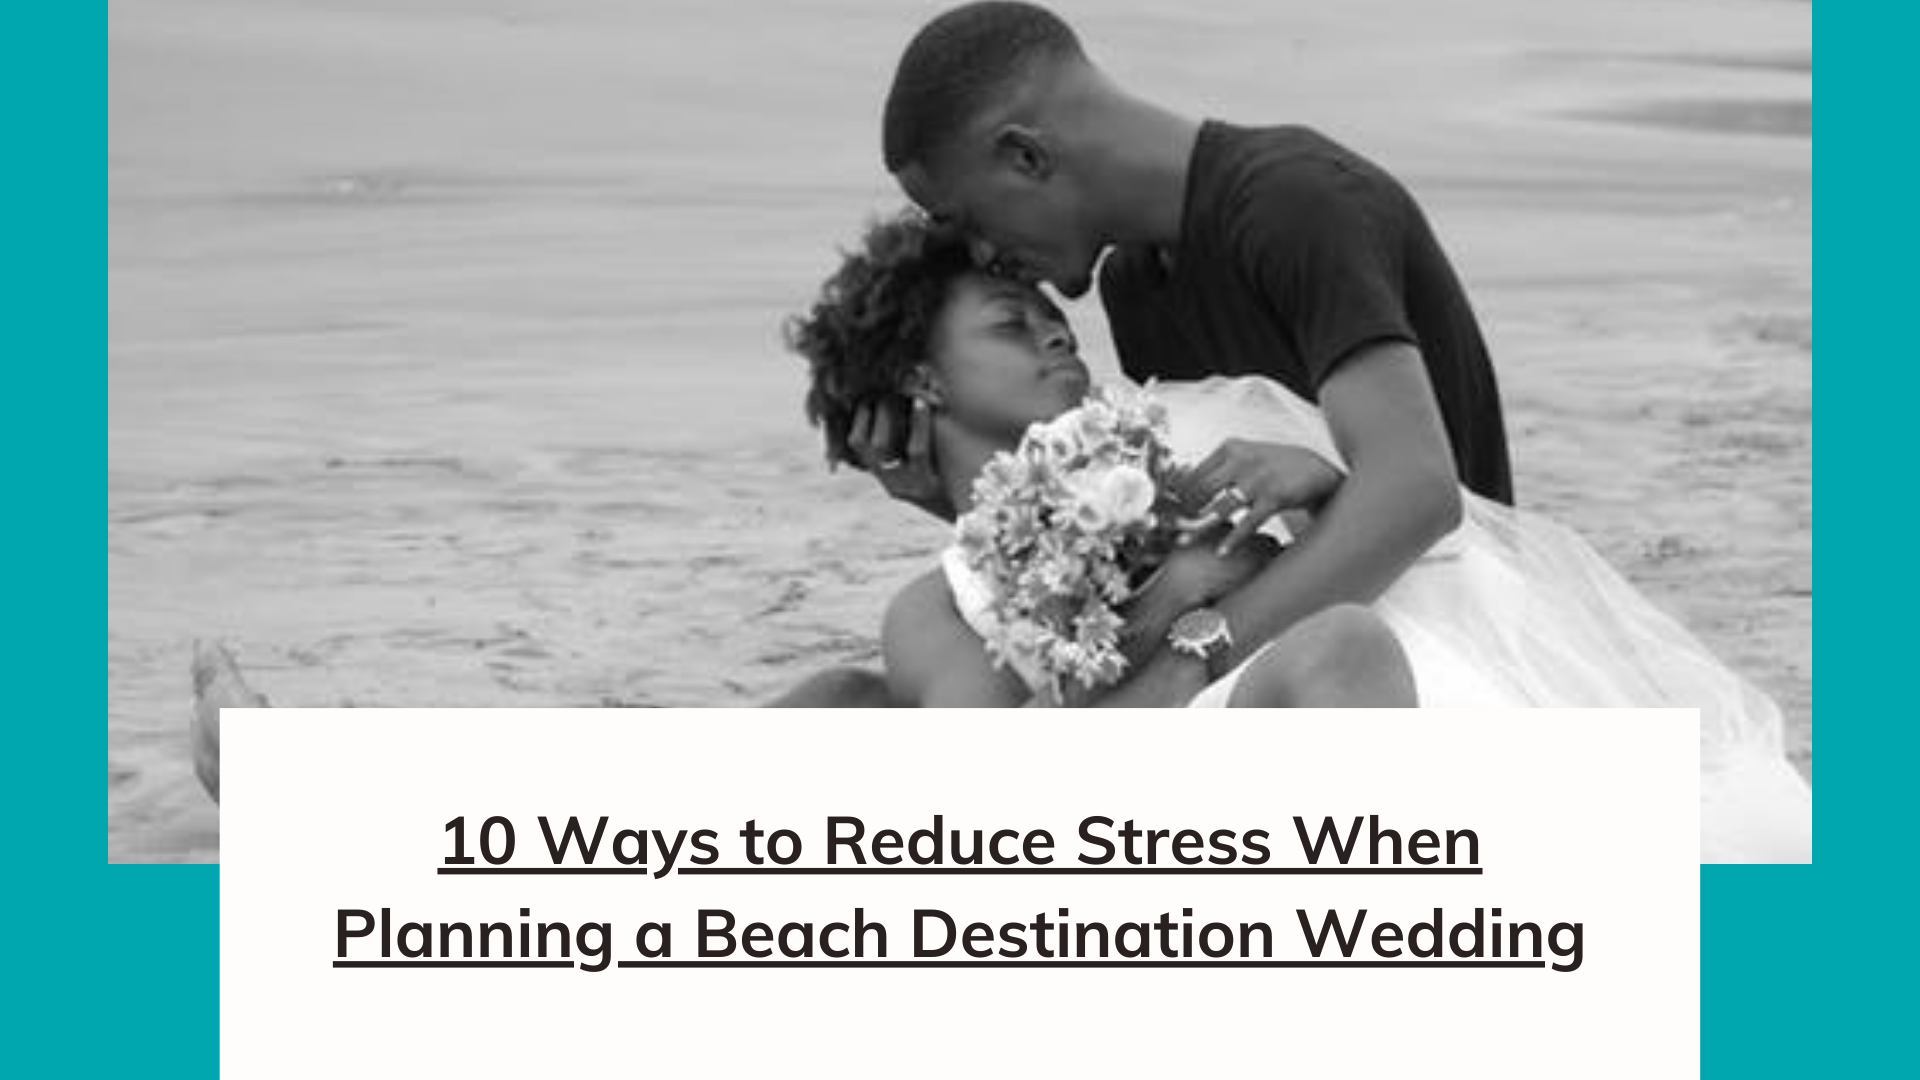 10 Ways to Reduce Stress When Planning a Destination Wedding. 'image'